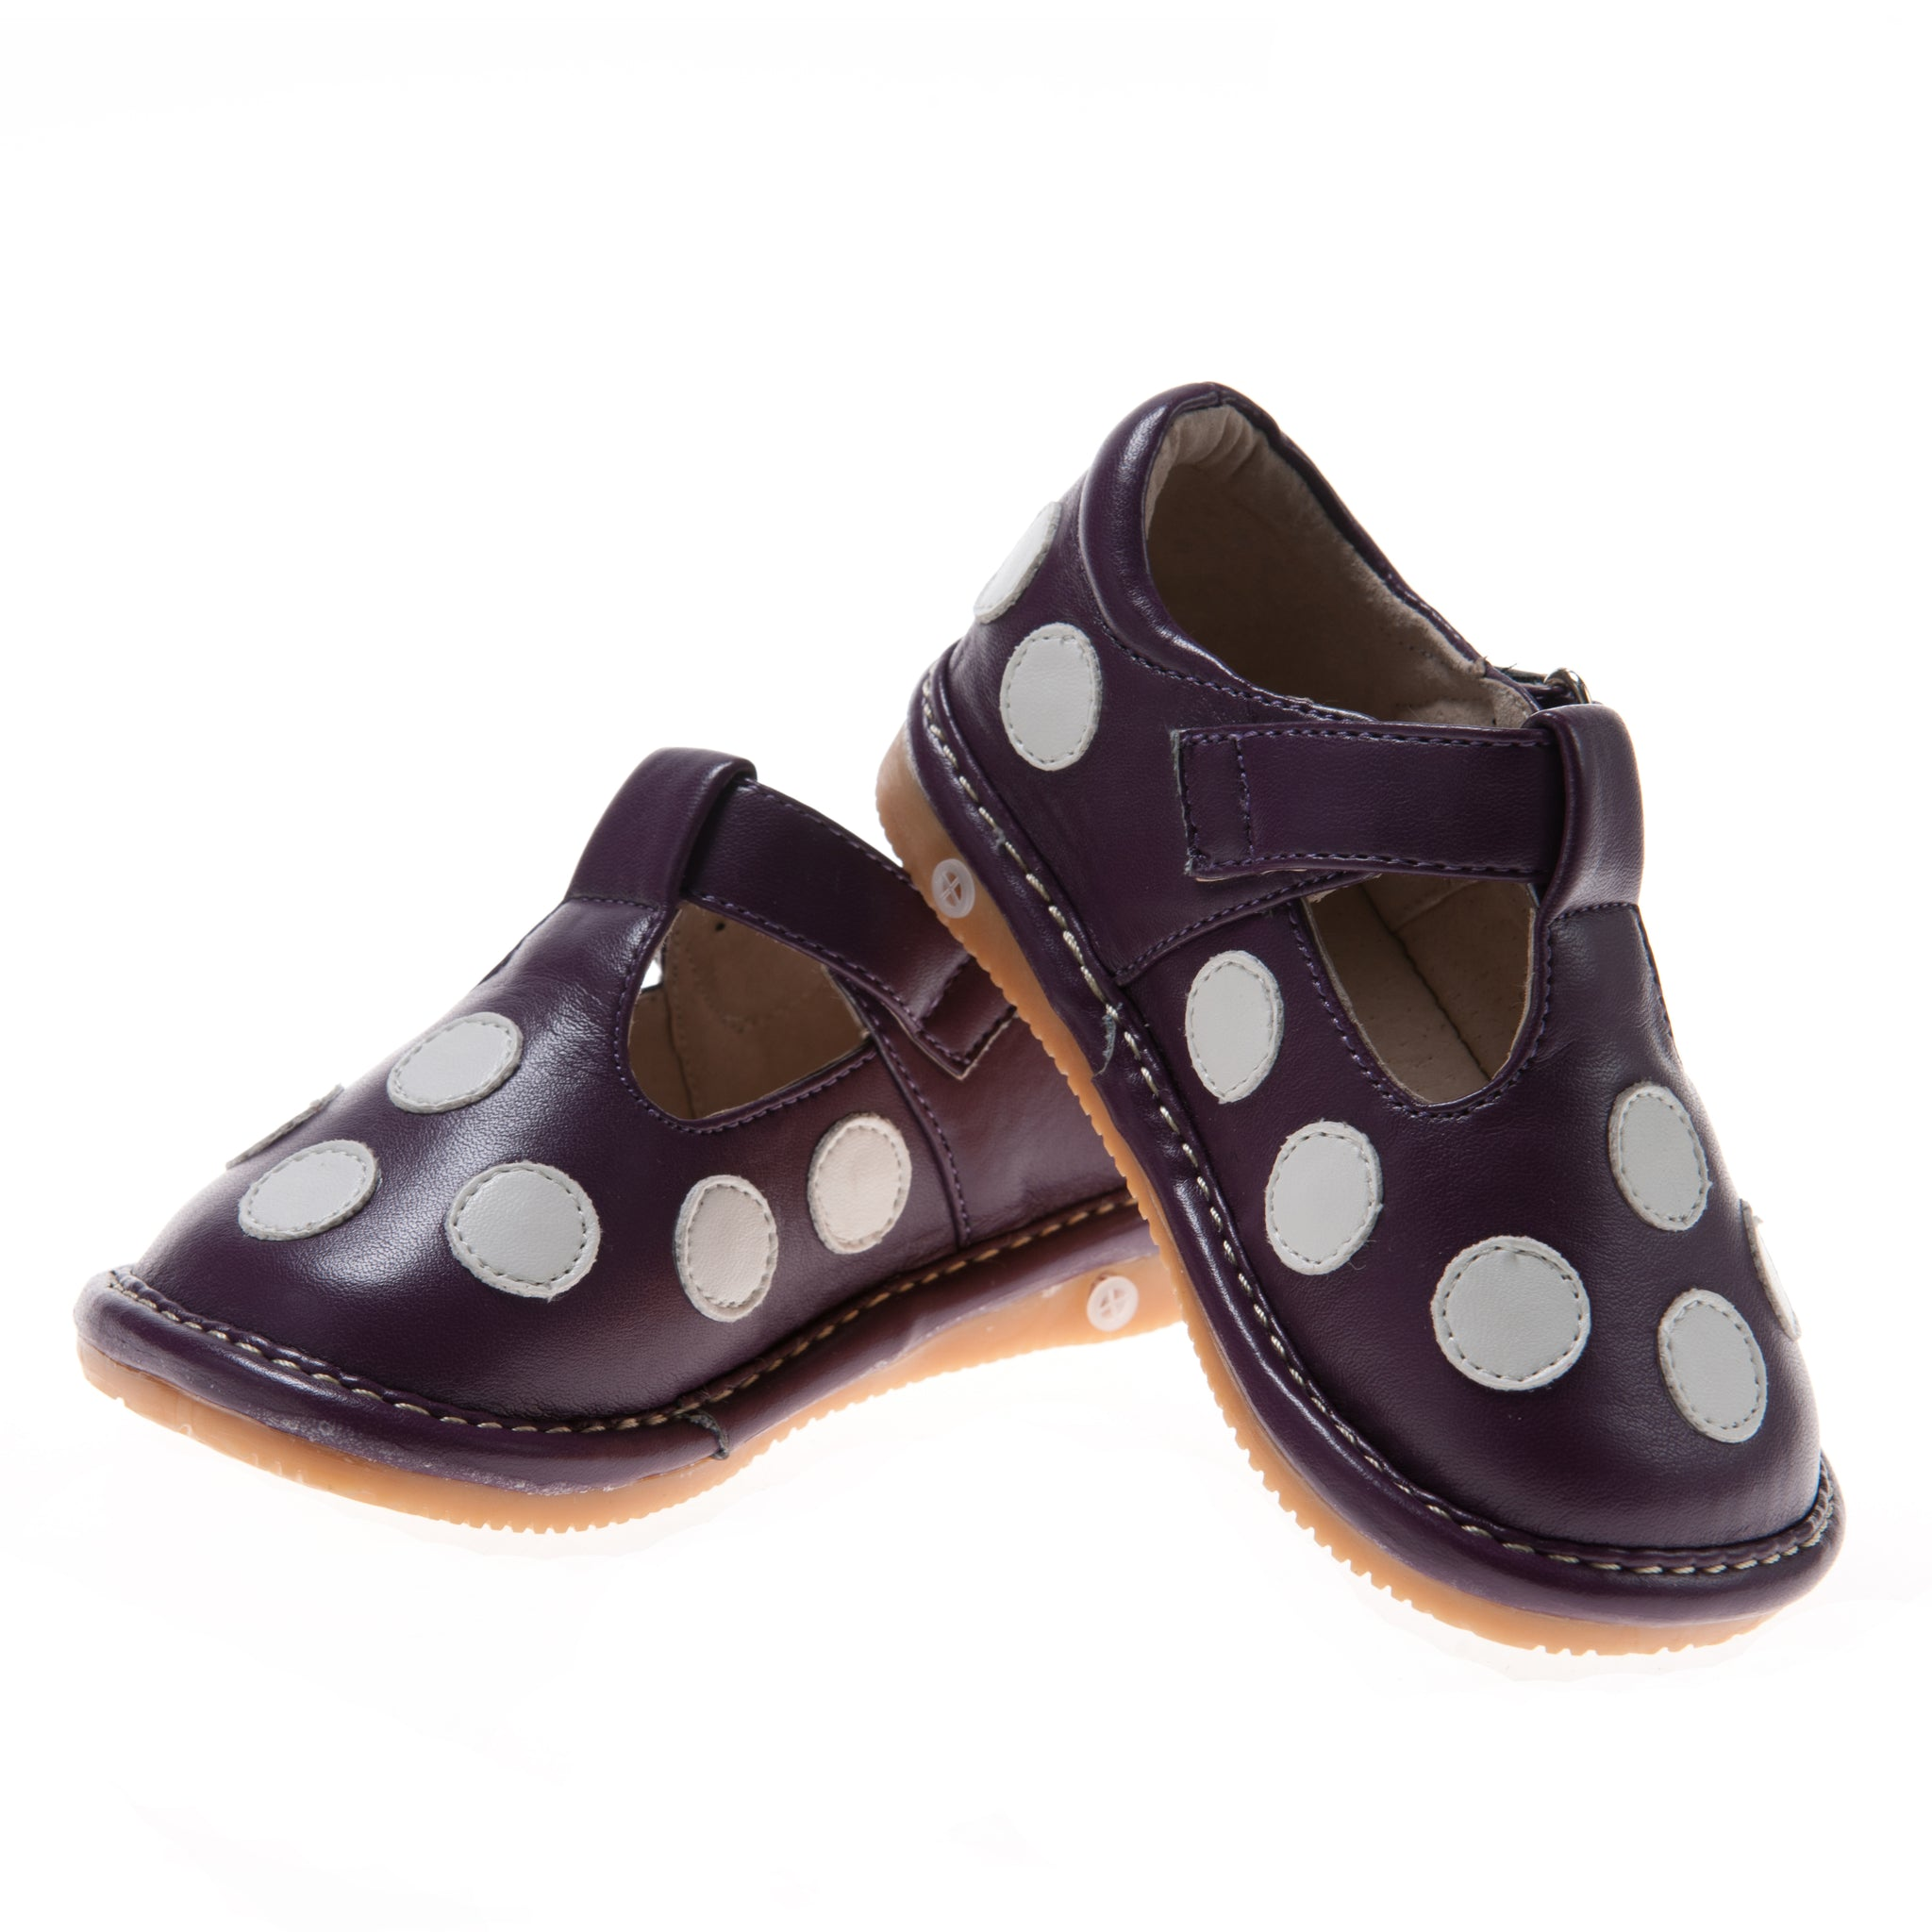 Girl/'s Black Leather Toddler Ruffle Squeaky Shoes Sizes 1 to 7 w//Free Stoppers